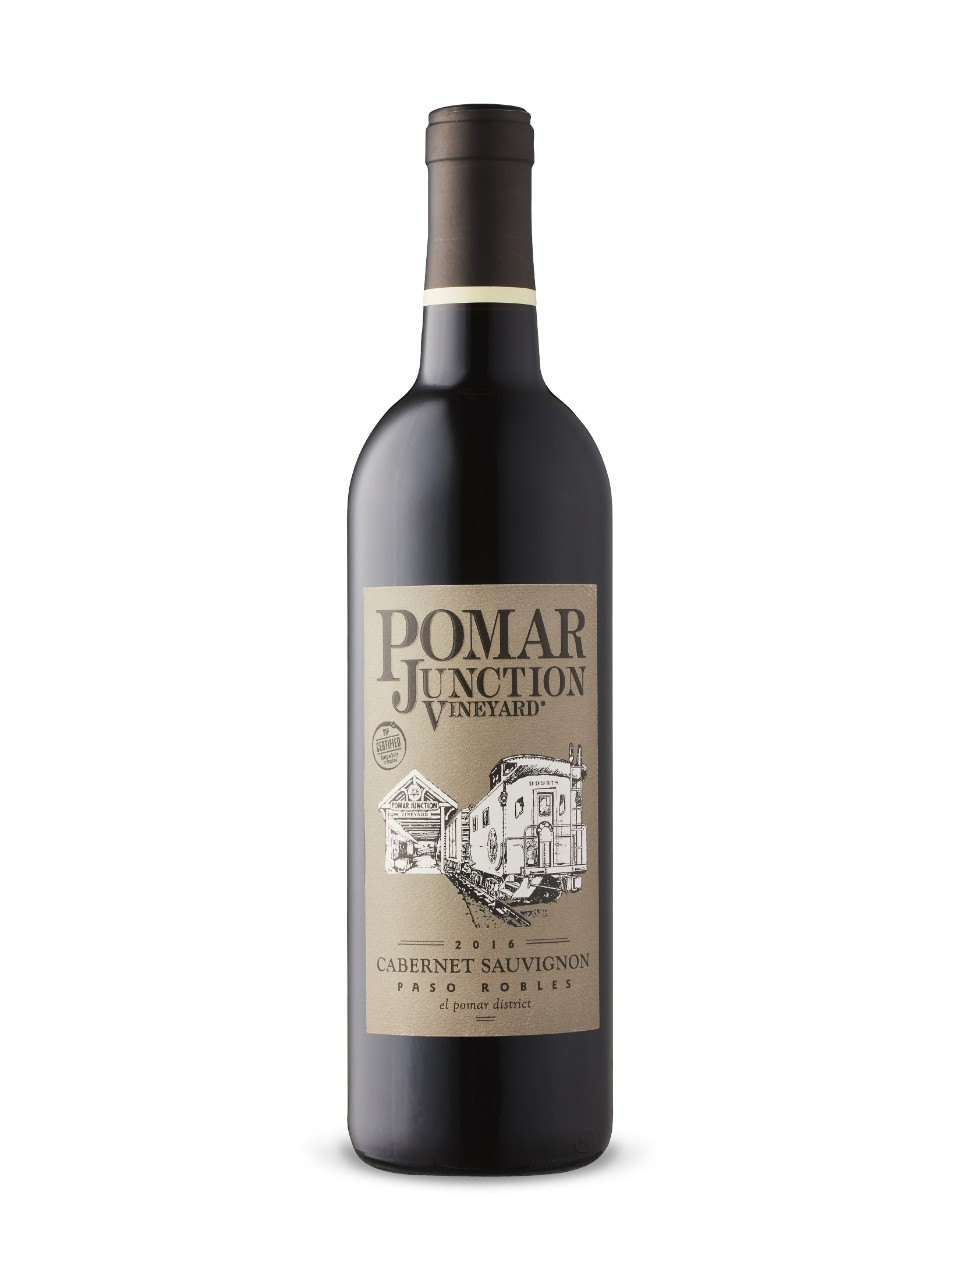 Pomar Junction Cabernet Sauvignon 2016 from LCBO